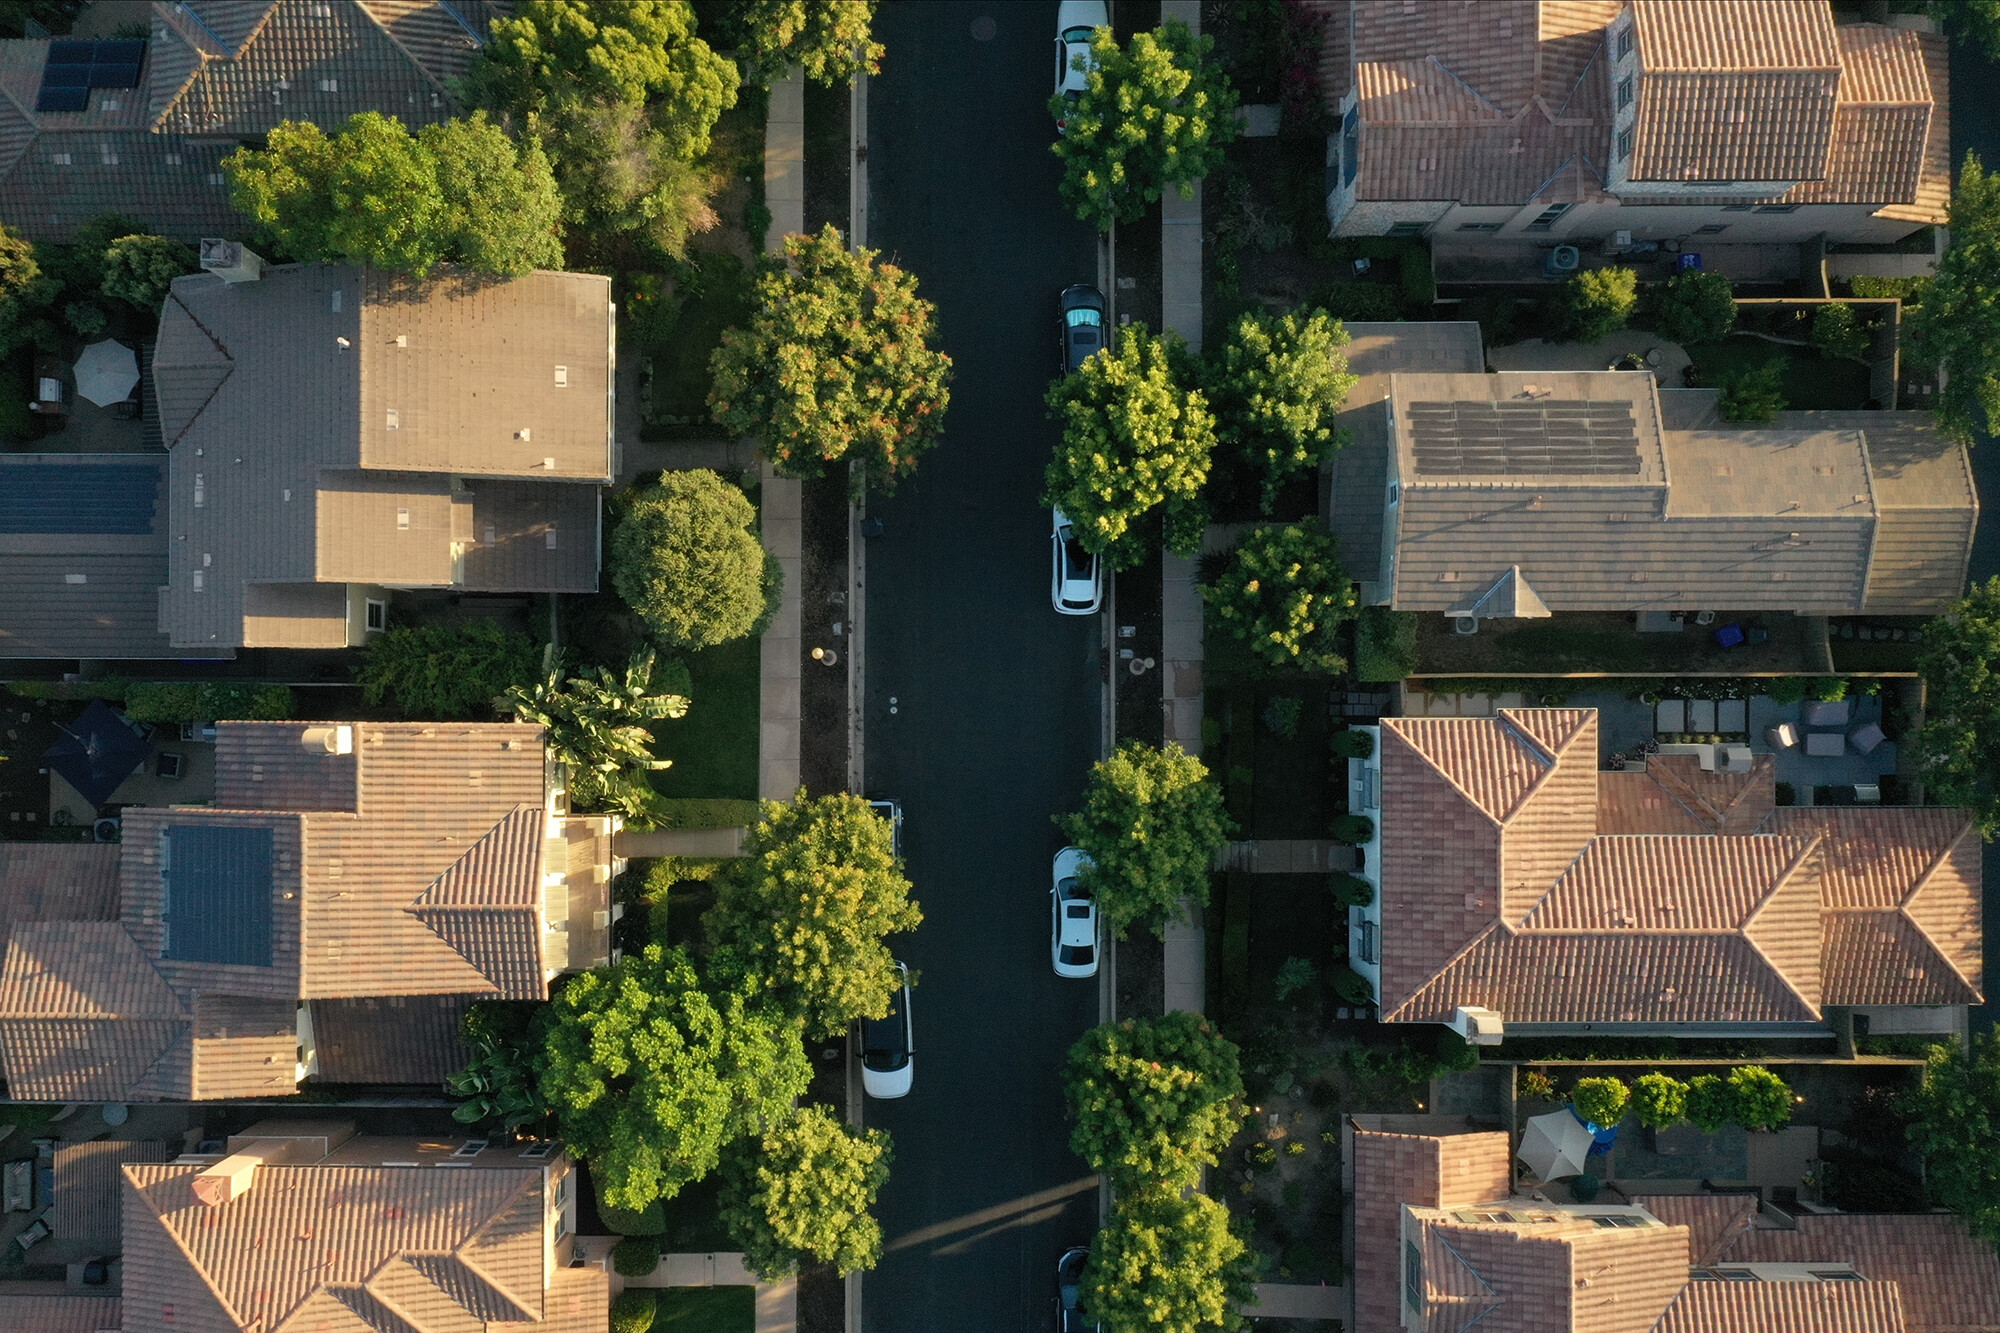 <i>Bing Guan/Bloomberg/Getty Images</i><br/>Wall Street is buying up family homes. This image shows an aerial photograph of single-family homes in San Diego